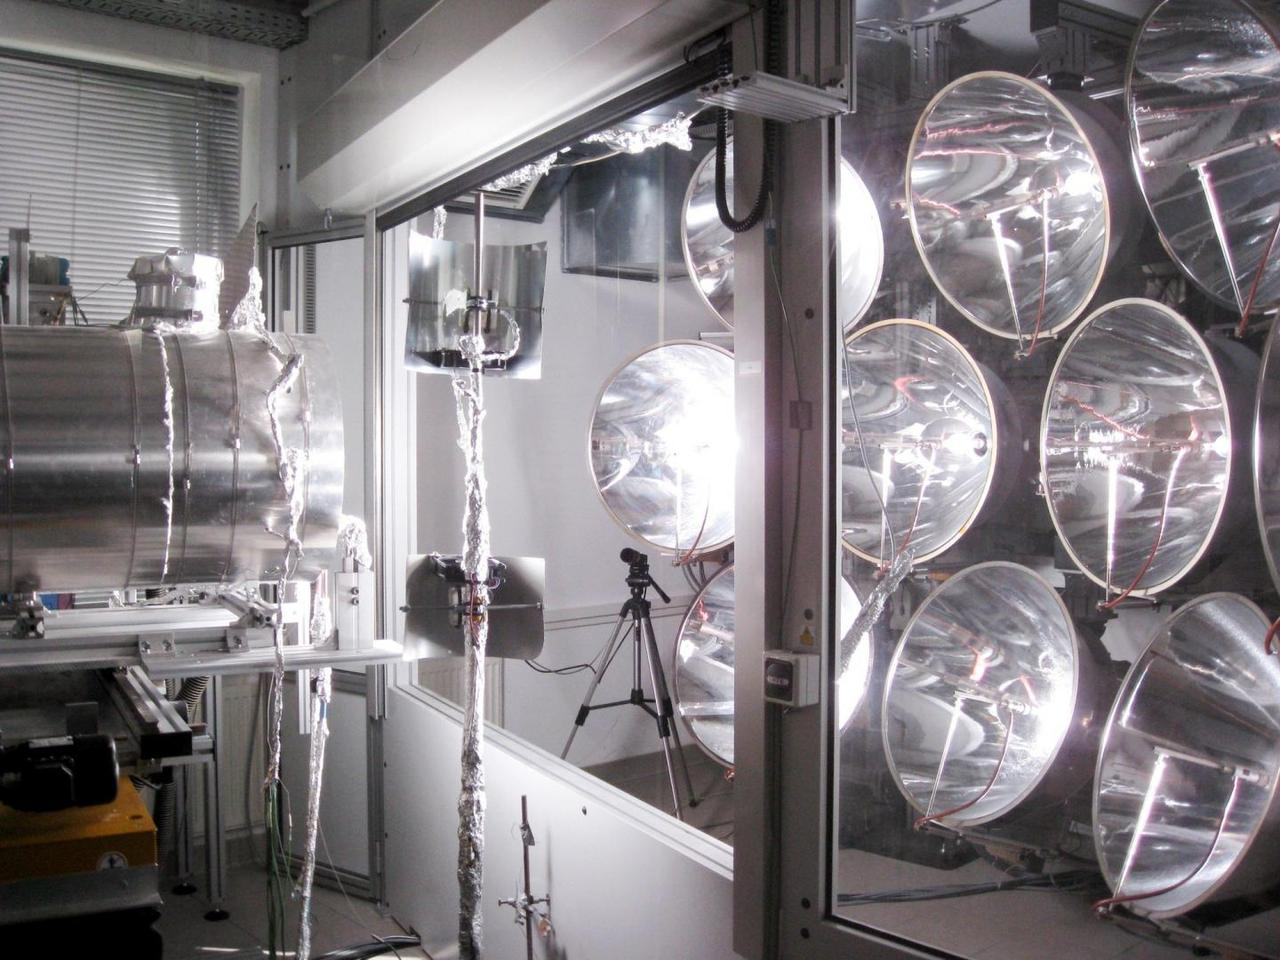 Simulated suns heated up the prototype CONTISOL reactor, which may eventually be used to produce hydrogen fuel